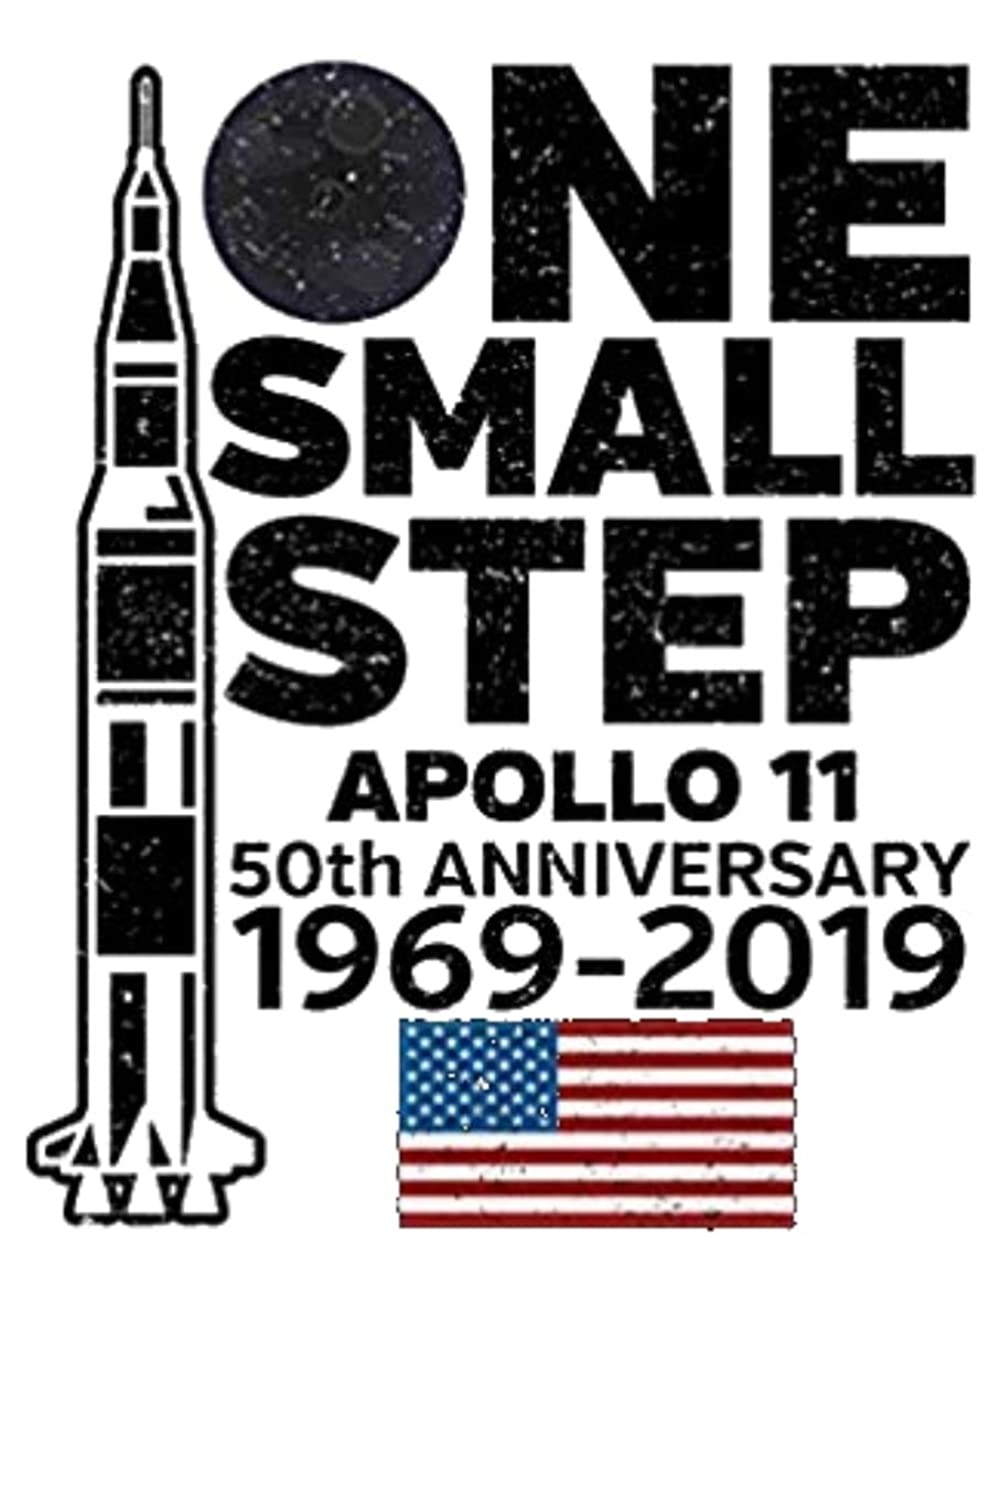 One Small Step Apollo 11 50th Anniversary 1969 - 2019: 50th Anniversary Moon Landing Apollo 11 1969 - 2019 120 Pages 6x9 inch Note Book